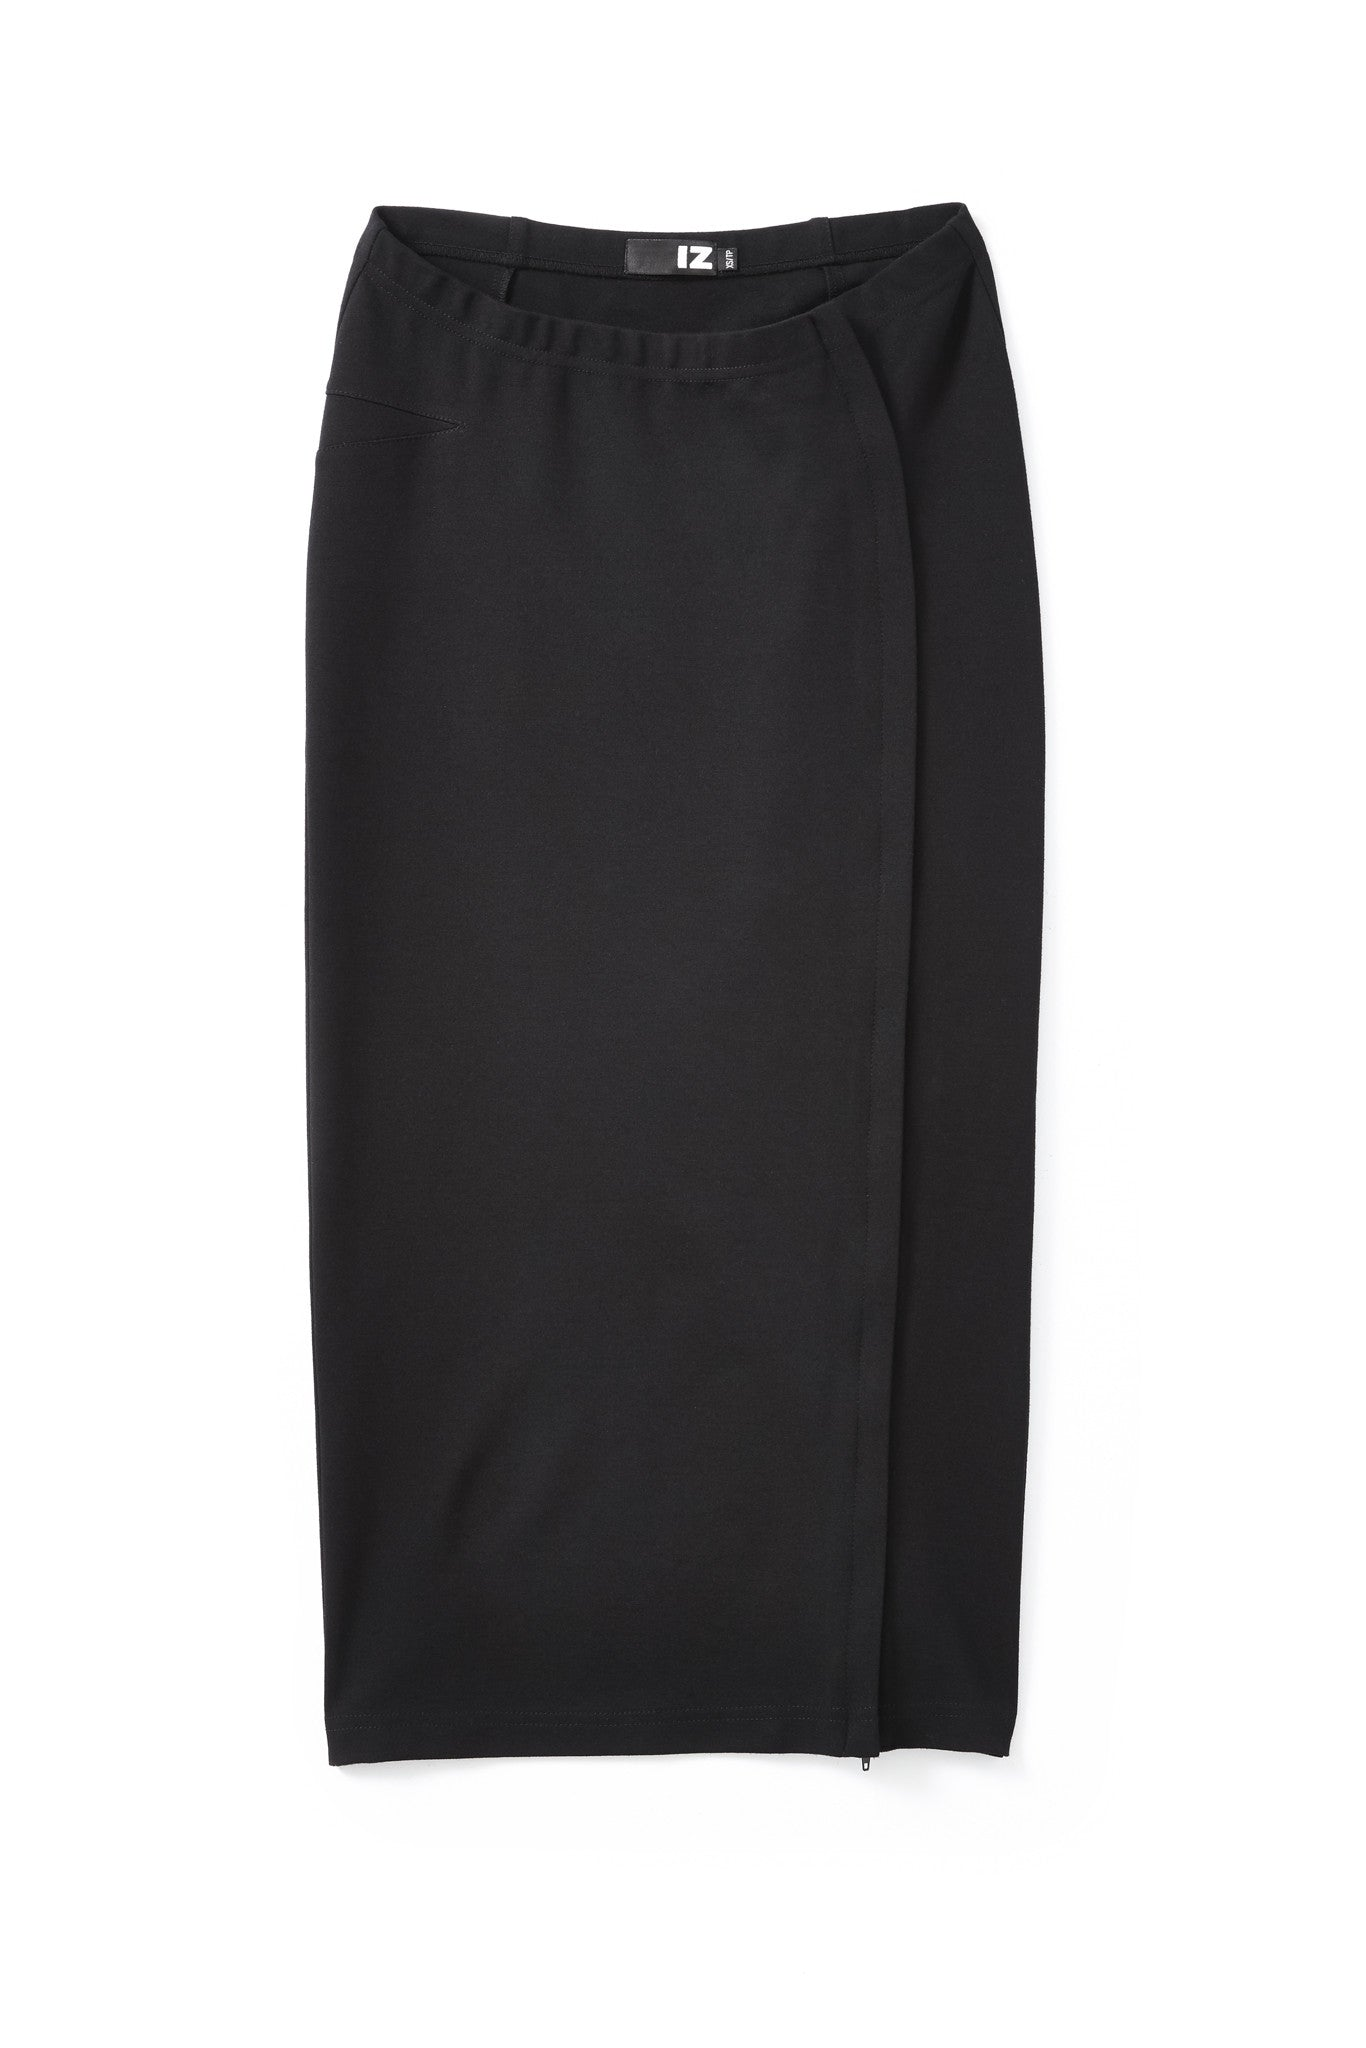 Wrap Skirt - A new trend in adaptive clothing for women.